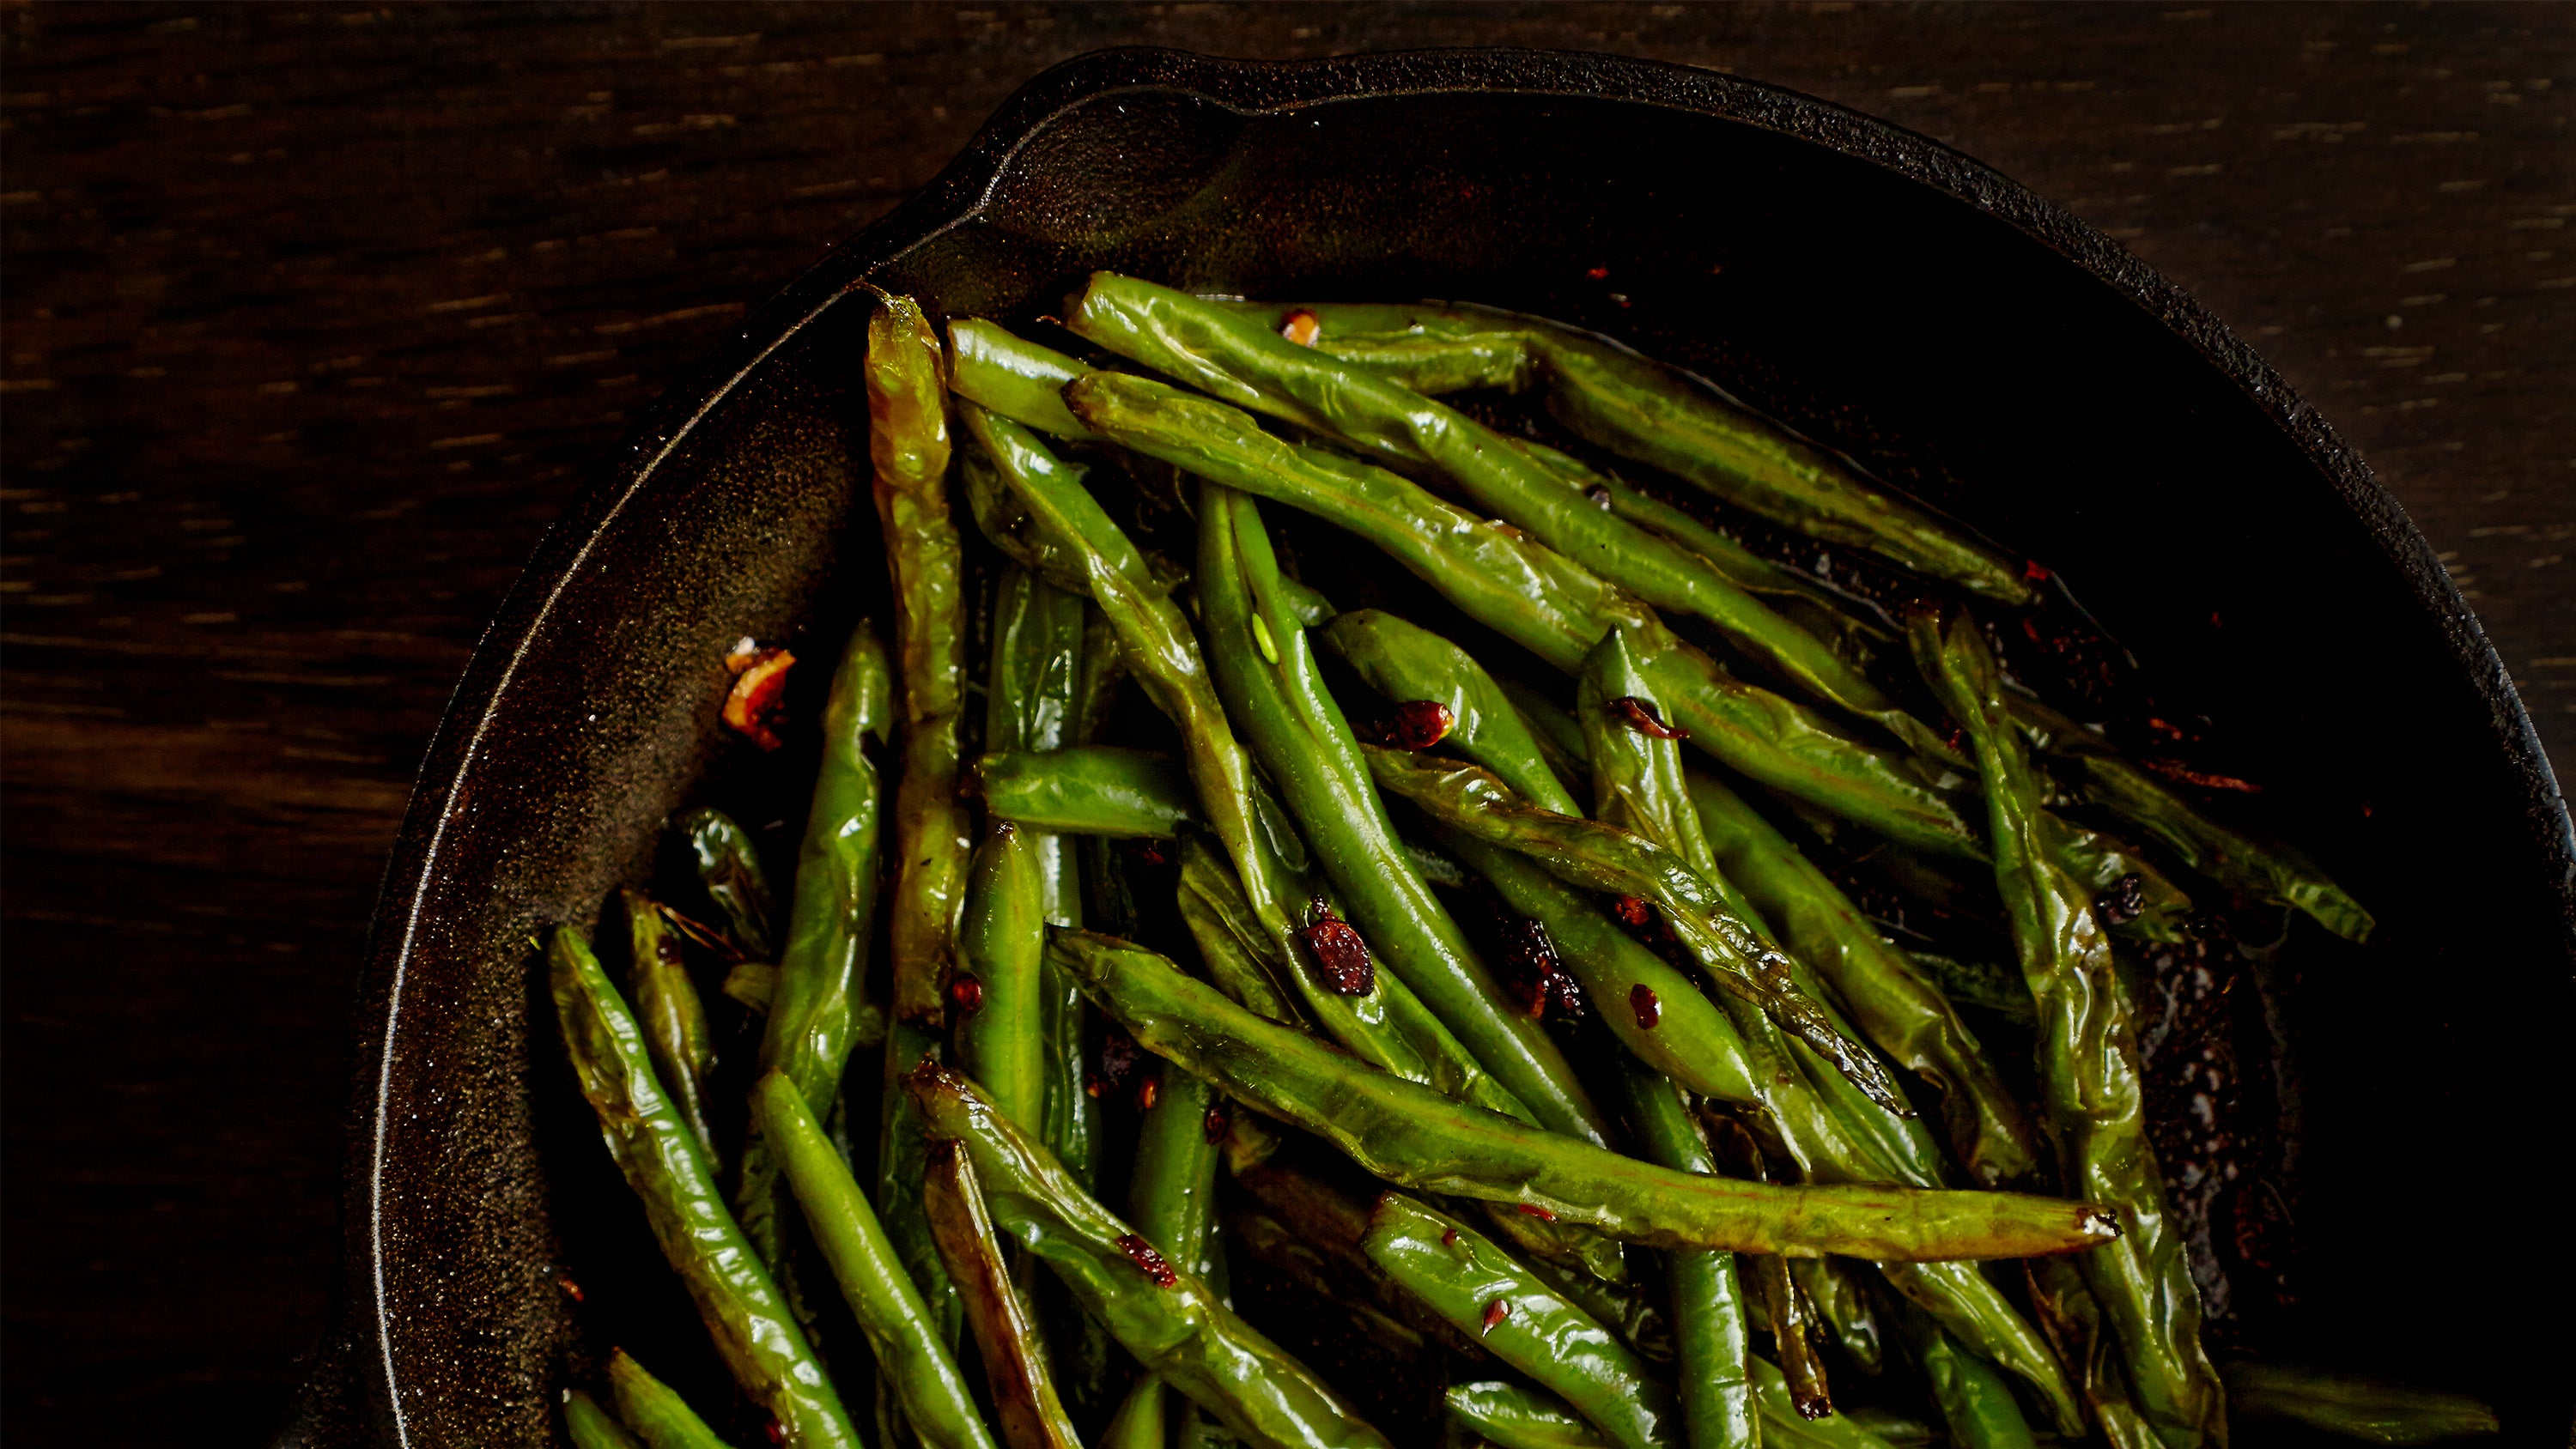 How To Make Green Beans Actually Taste Good